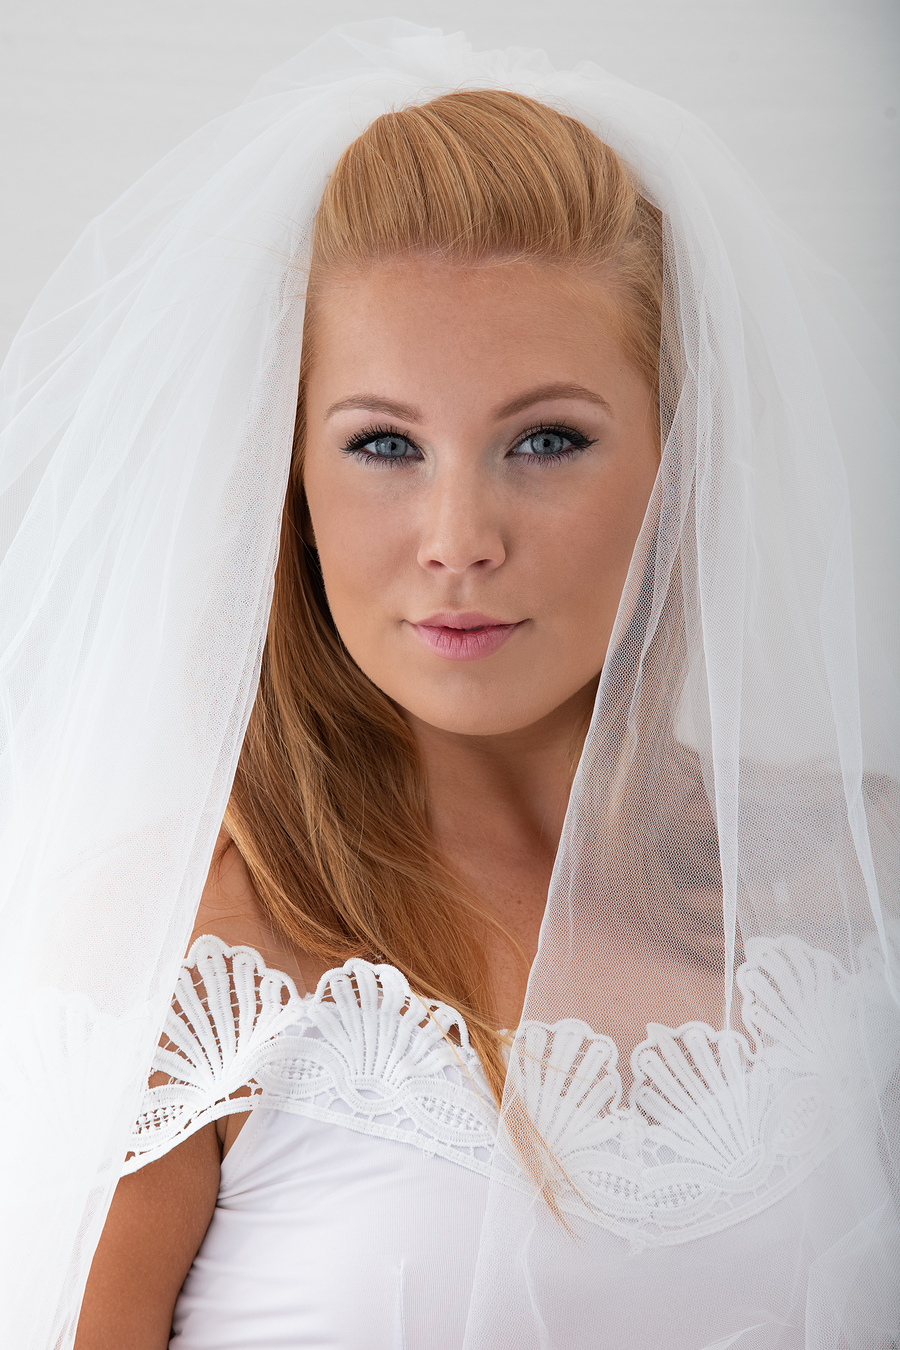 Redd212 Wedding Veil / Photography by Andy Oliver, Model Redd212, Post processing by Andy Oliver, Taken at Ollie's Studio / Uploaded 23rd September 2018 @ 05:38 PM